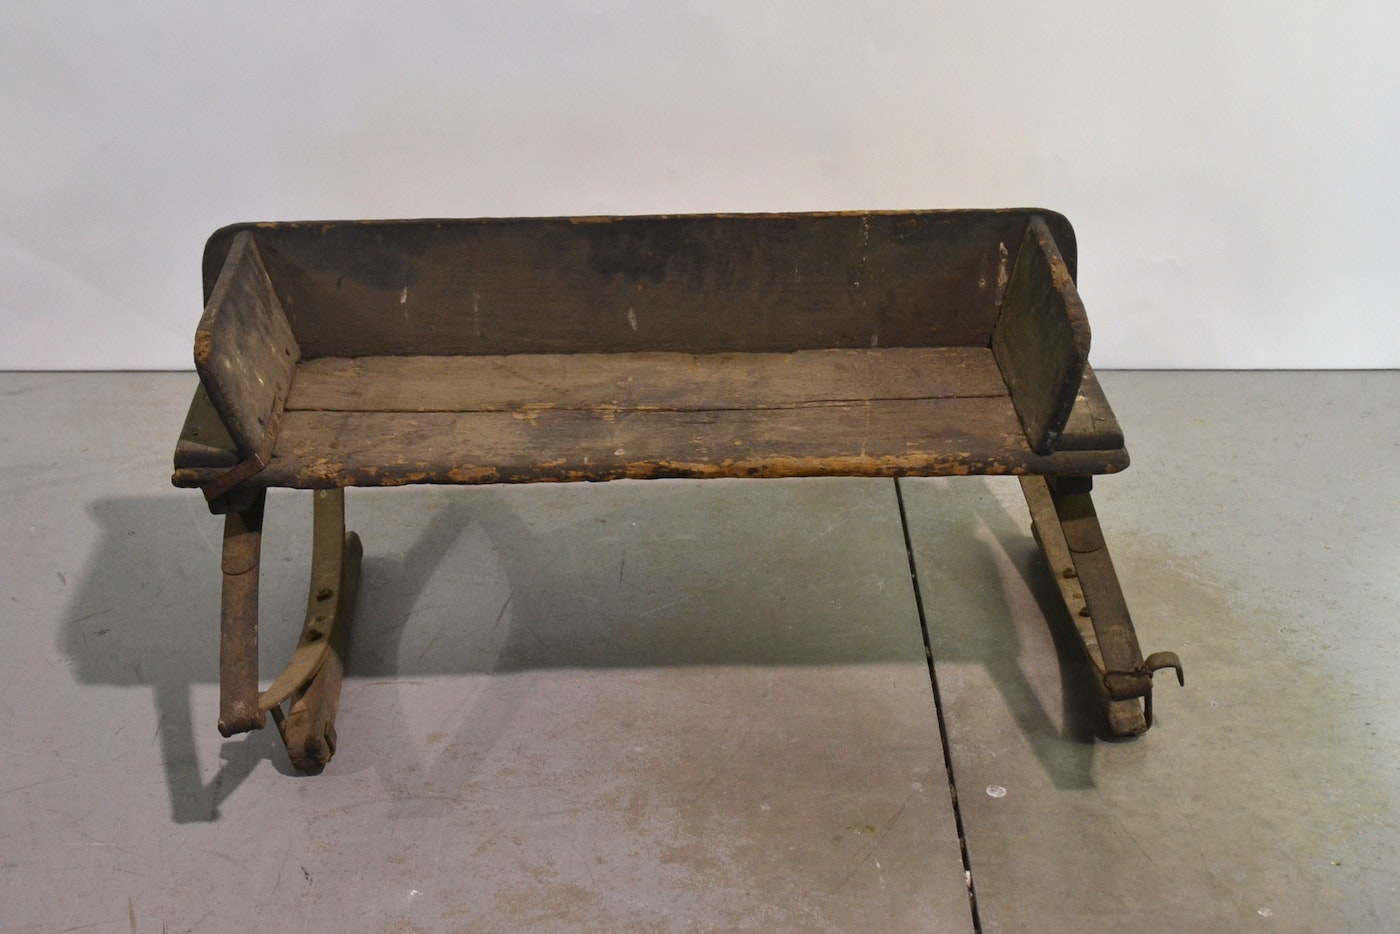 Antique Buggy Seats : Antique wooden buckboard buggy carriage seat ebth